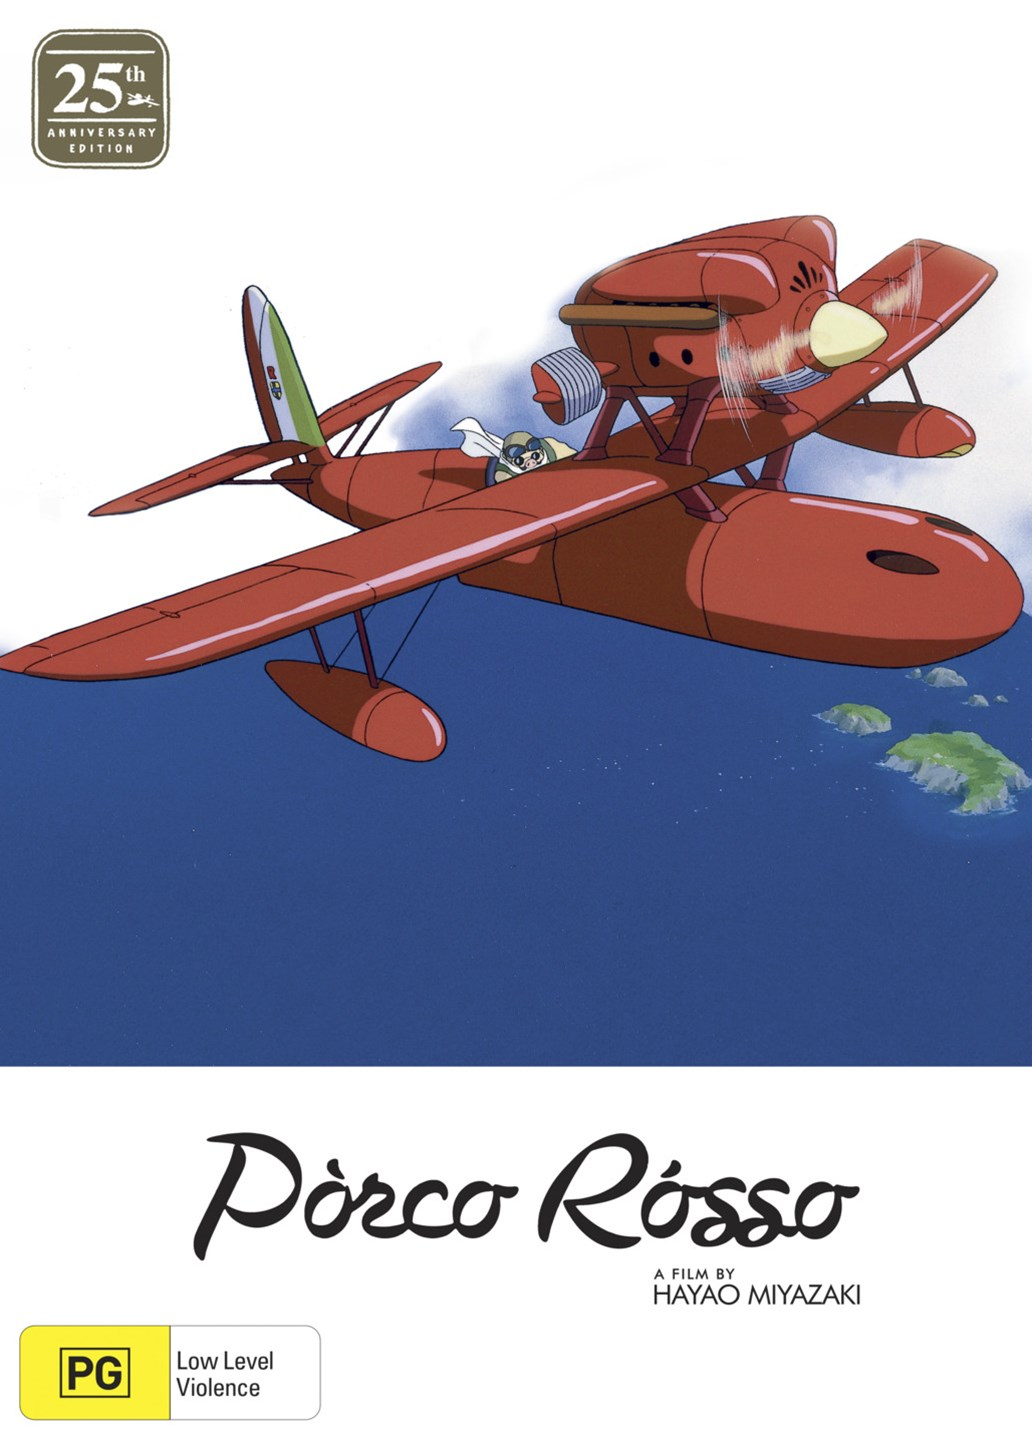 Porco Rosso 25th Anniversary Ltd Ed (Blu-Ray & DVD Combo with Artbook)